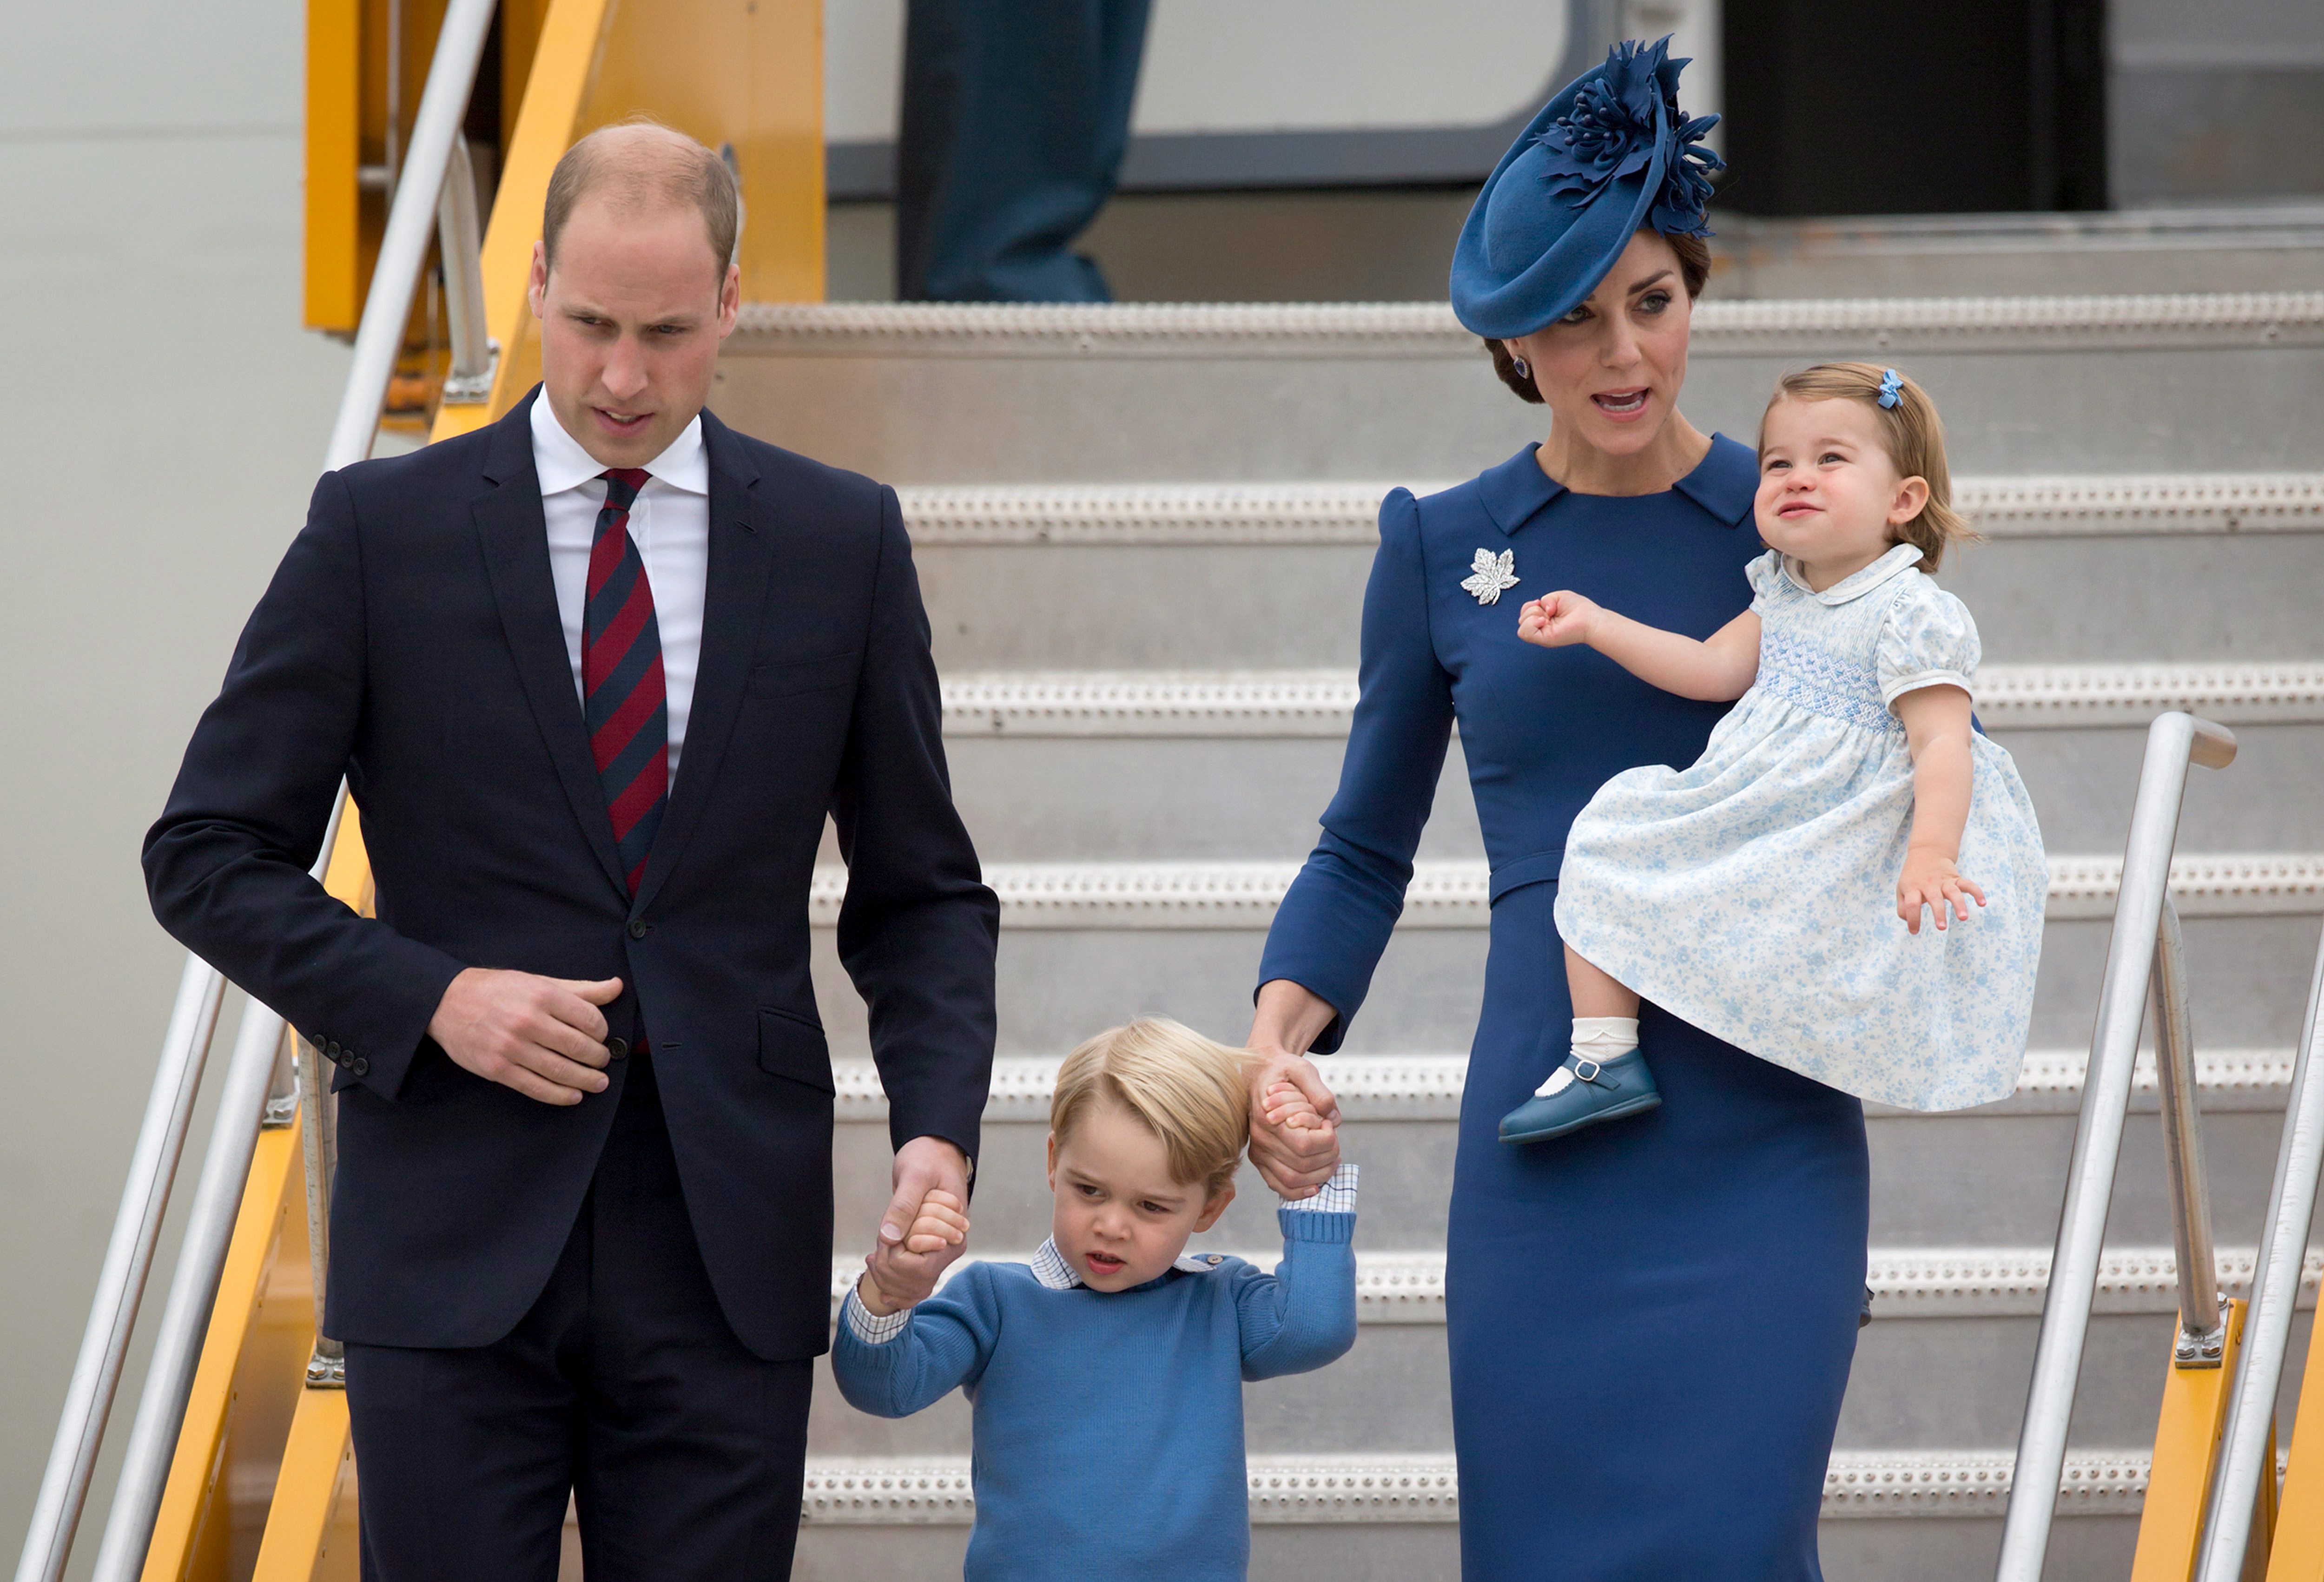 Britain's Prince William and his wife Kate, the Duke and Duchess of Cambridge, along with their children Prince George and Princess Charlotte arrive in Victoria, British Columbia, Saturday, Sept. 24, 2016. (Darryl Dyck/The Canadian Press via AP)